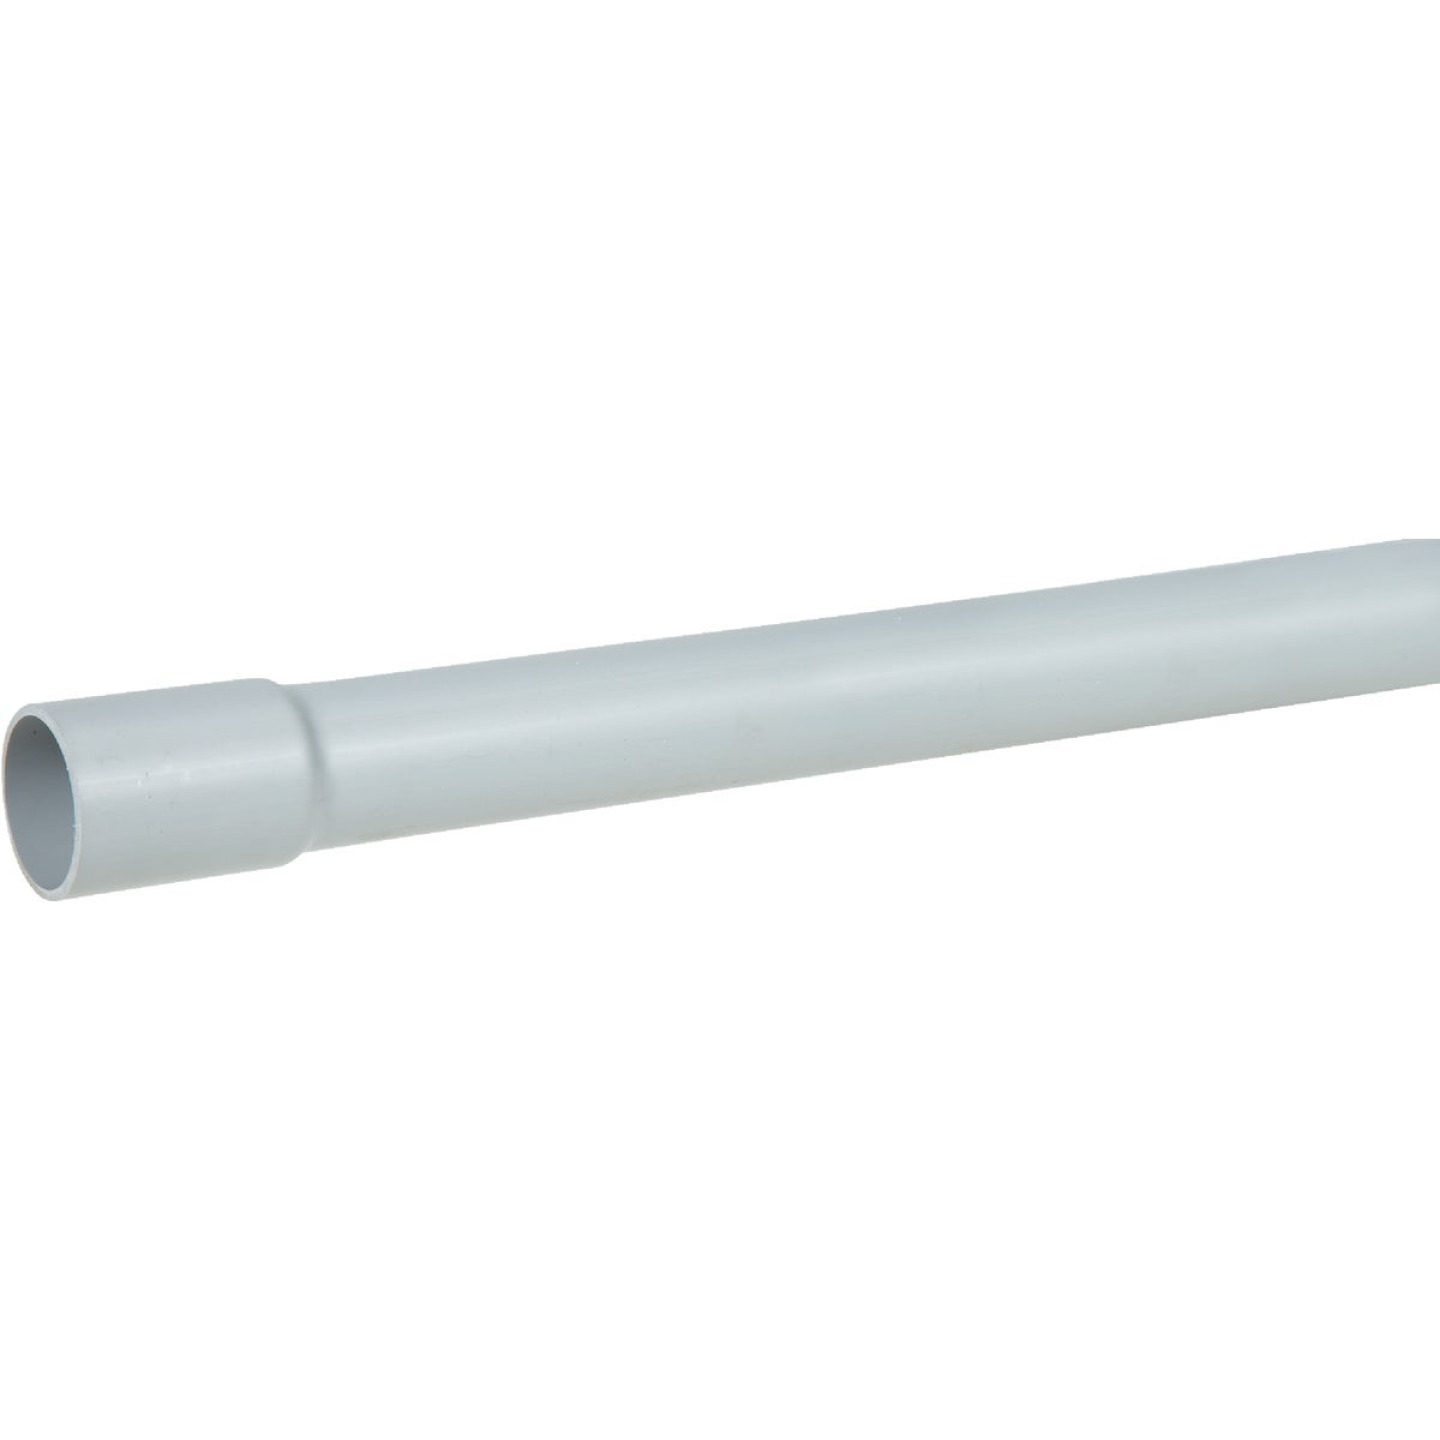 Allied 1-1/2 In. x 10 Ft. Schedule 80 PVC Conduit Image 1